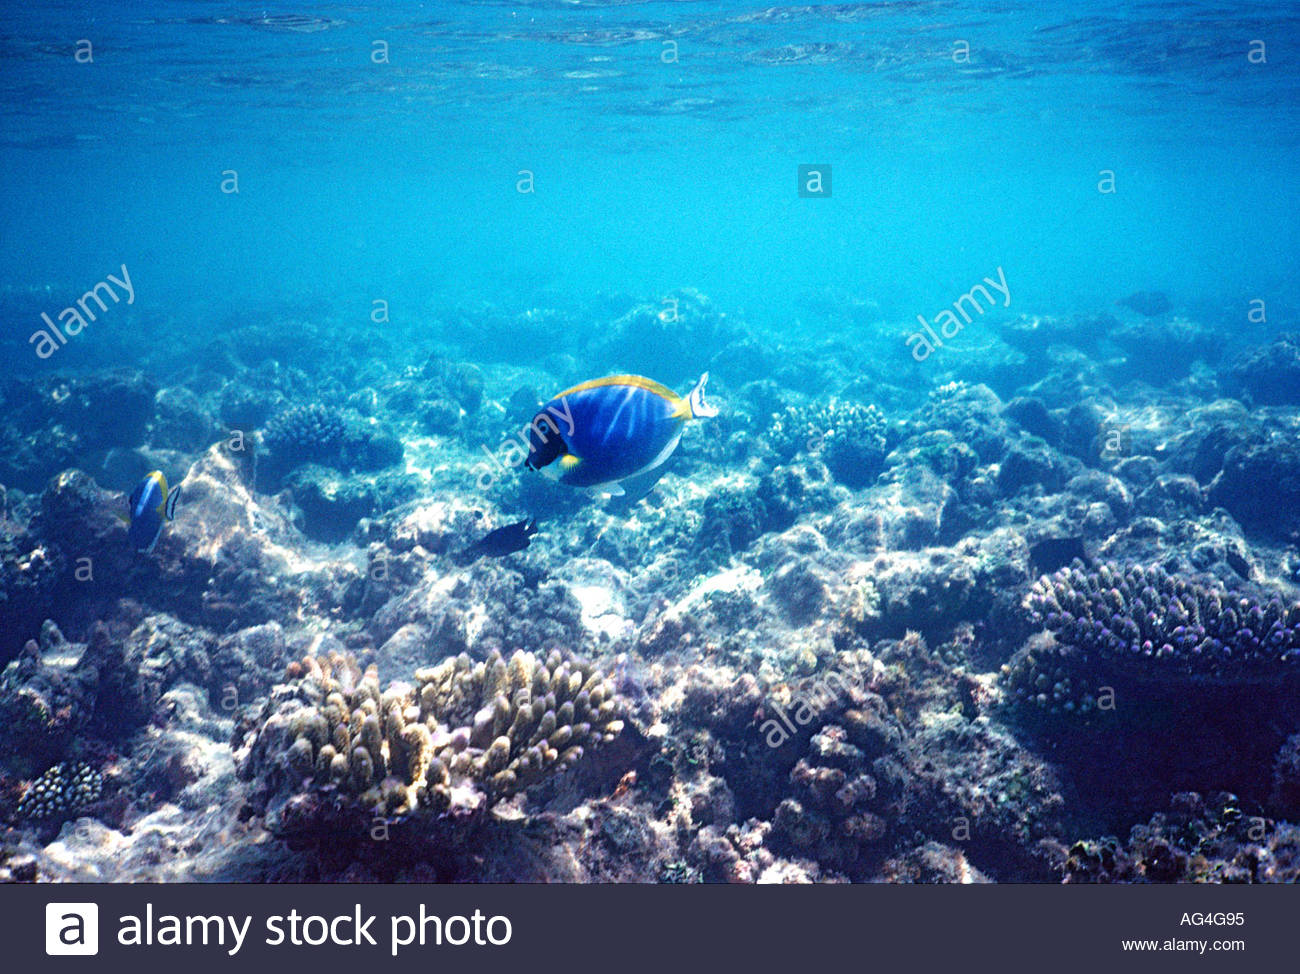 Tropical fish underwater - Stock Image